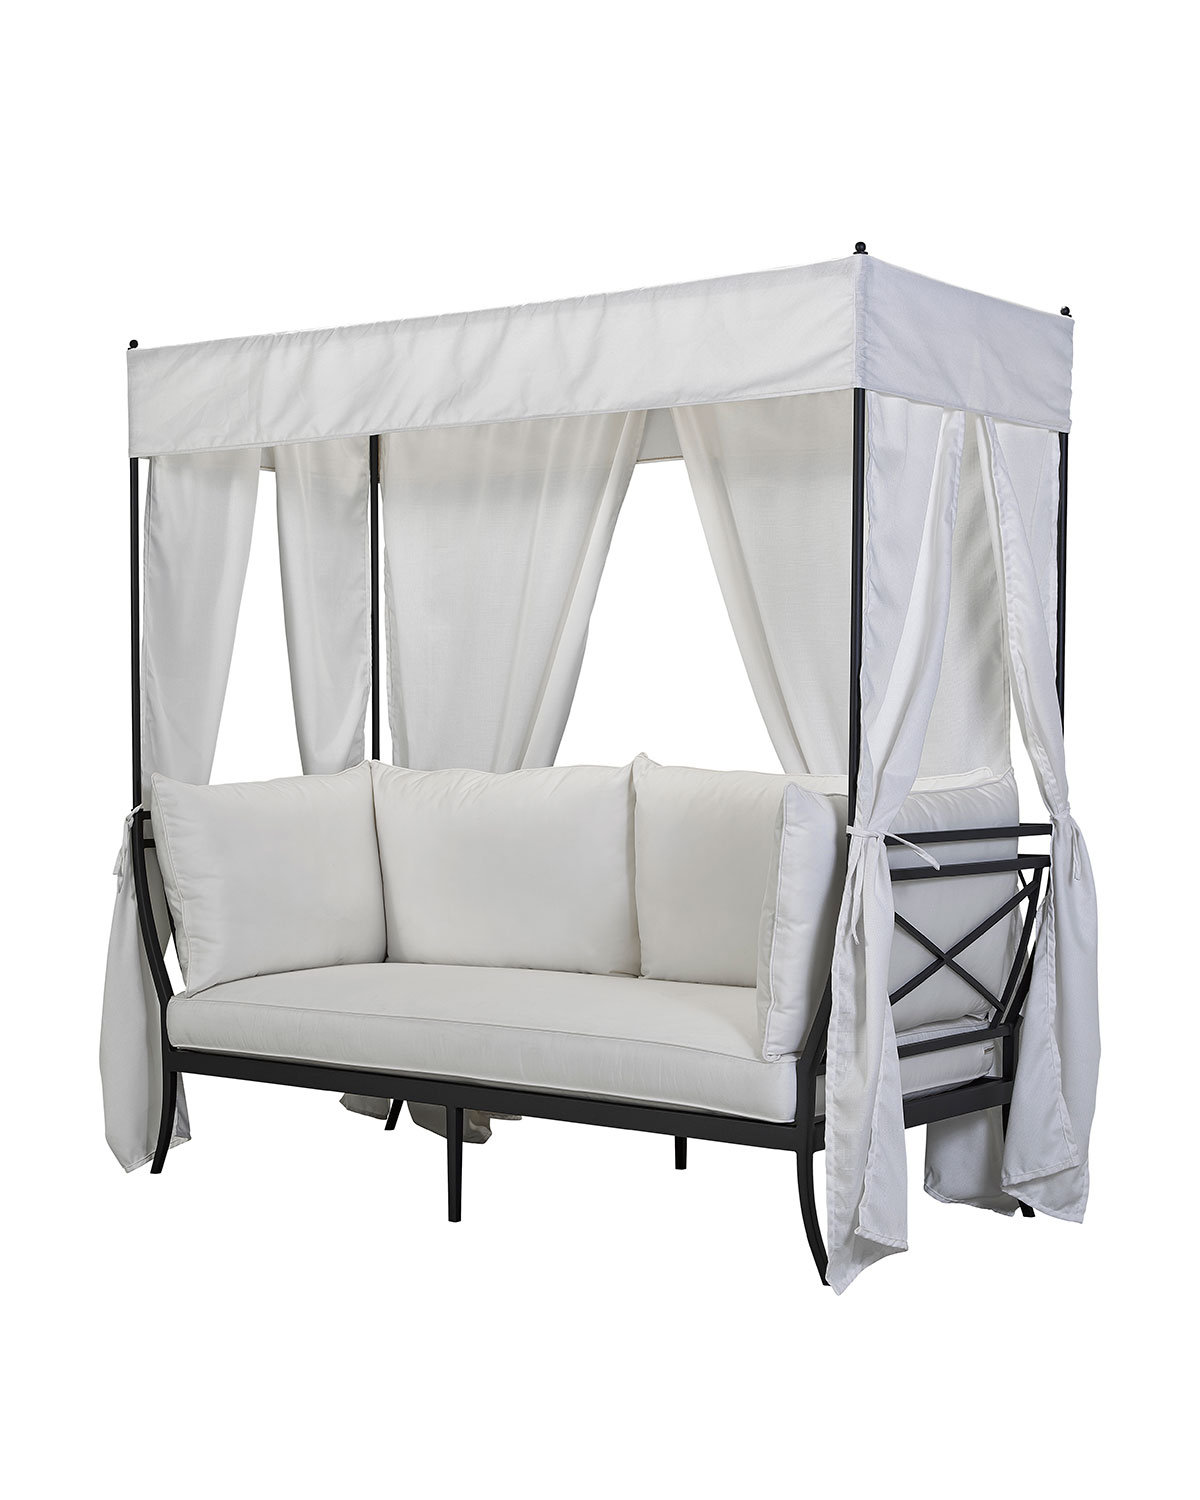 Trendy Bamboo Daybeds With Canopy For Winterthur Day Bed Canopy (View 24 of 25)